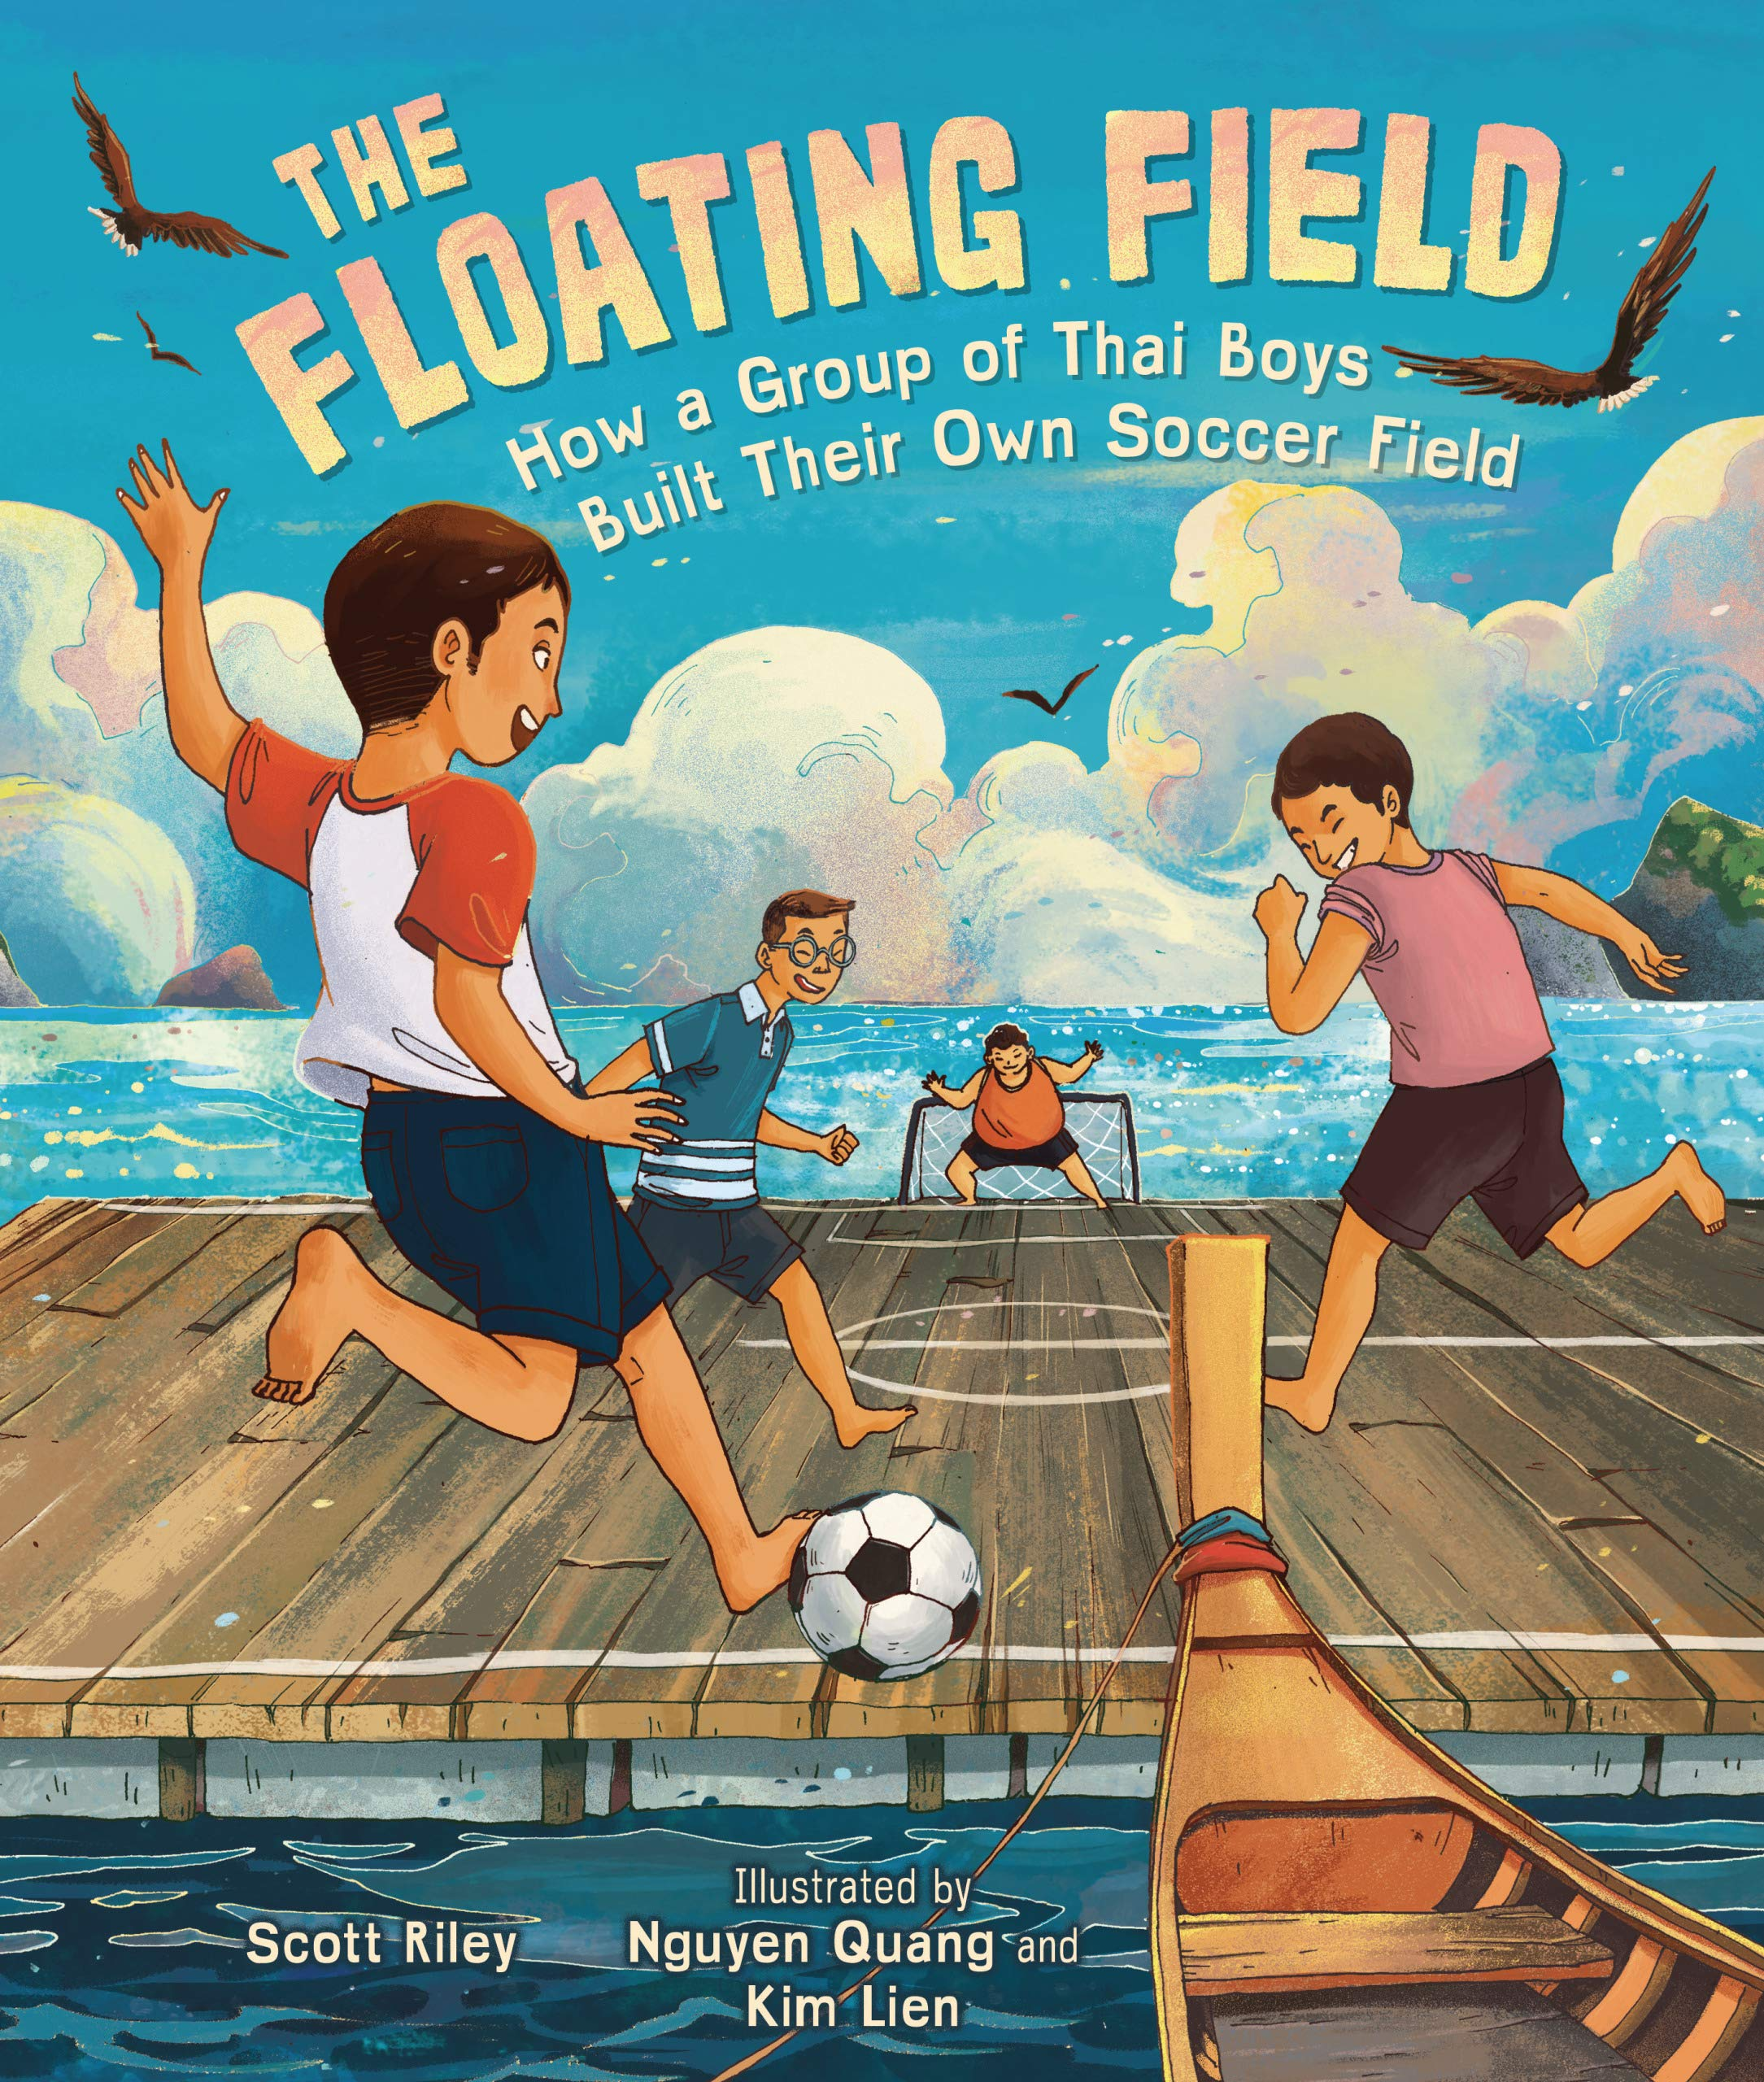 Top 2021 Releases: The Floating Field: How a Group of Thai Boys Built Their Own Soccer Field:  Riley, Scott, Quang, Nguyen, Lien, Kim